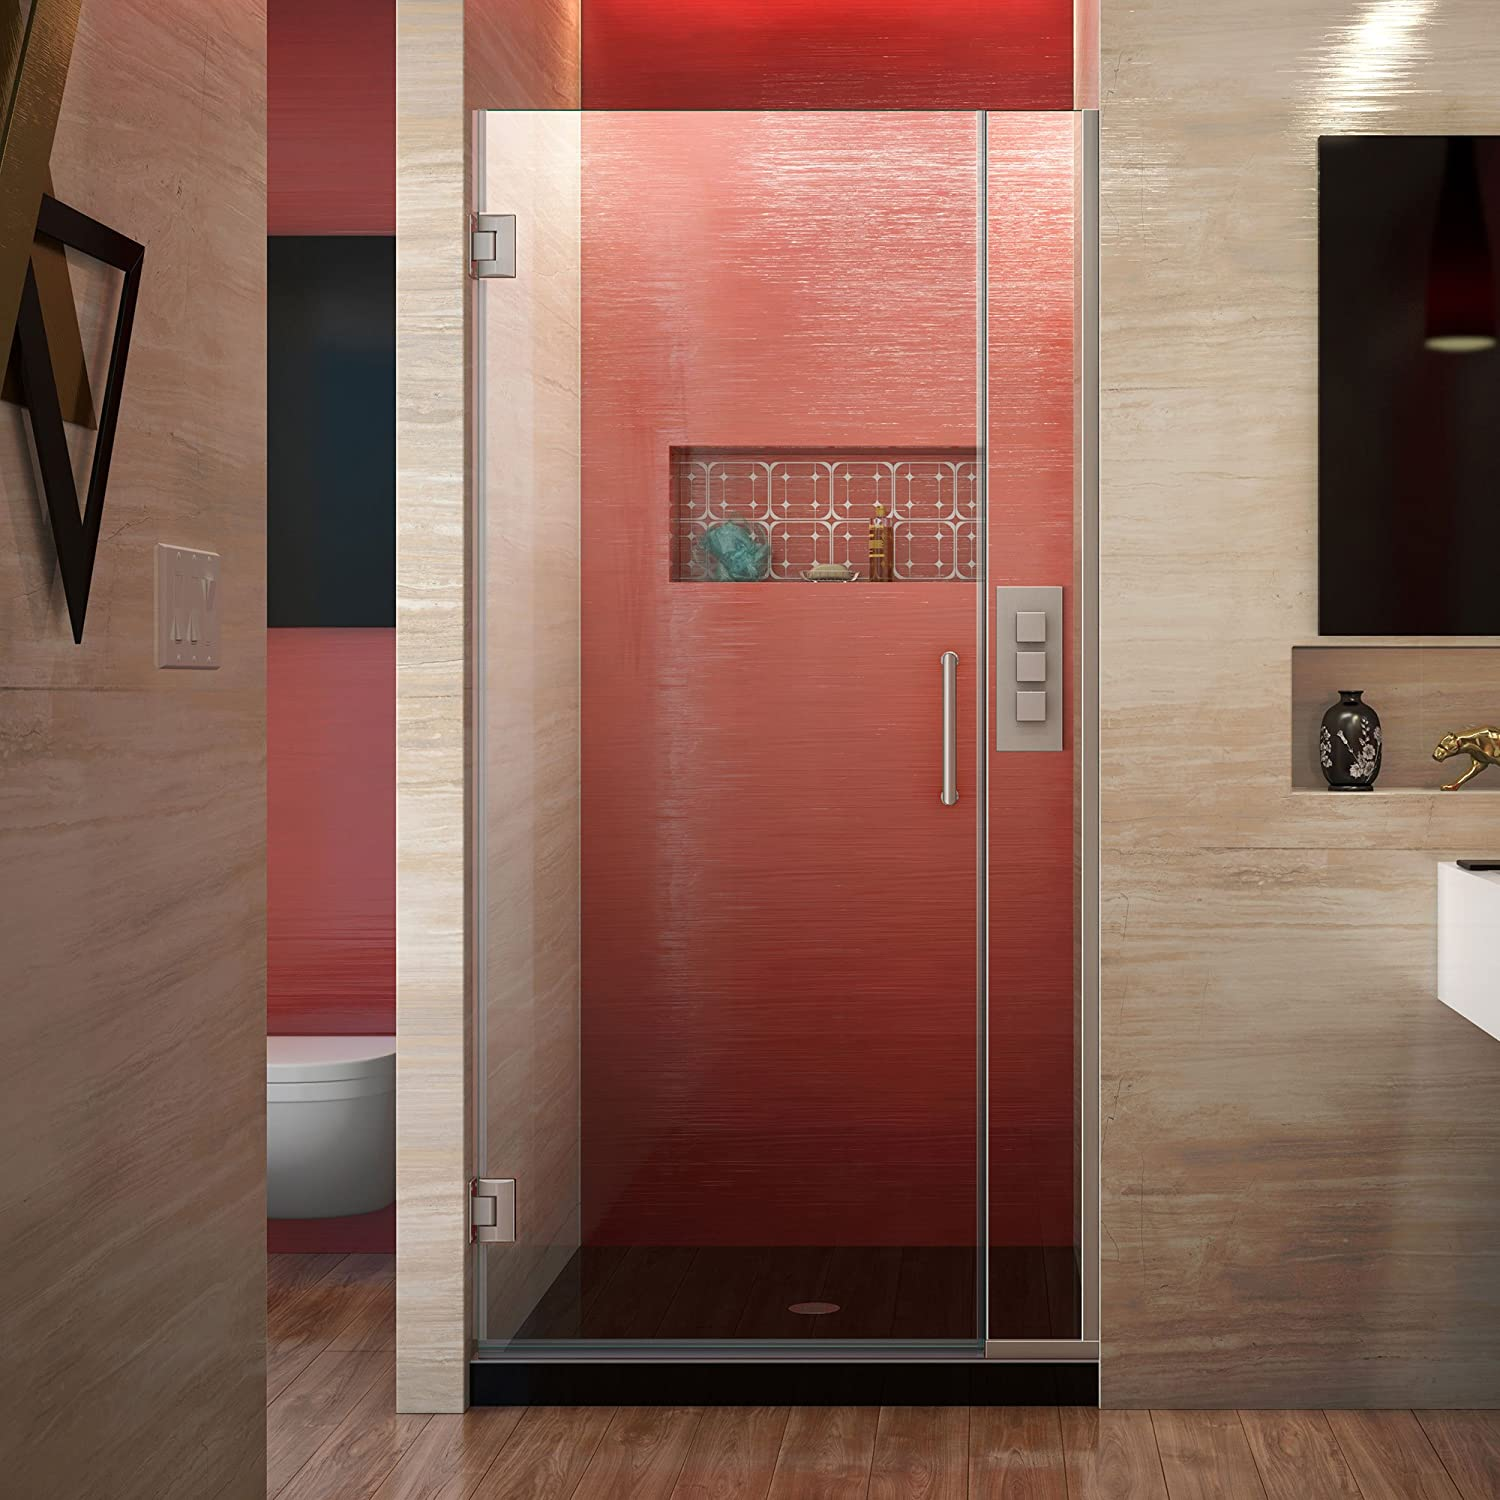 DreamLine Unidoor Plus 33 1 2-34 in. W x 72 in. H Frameless Hinged Shower Door, Clear Glass, Brushed Nickel, SHDR-243357210-04